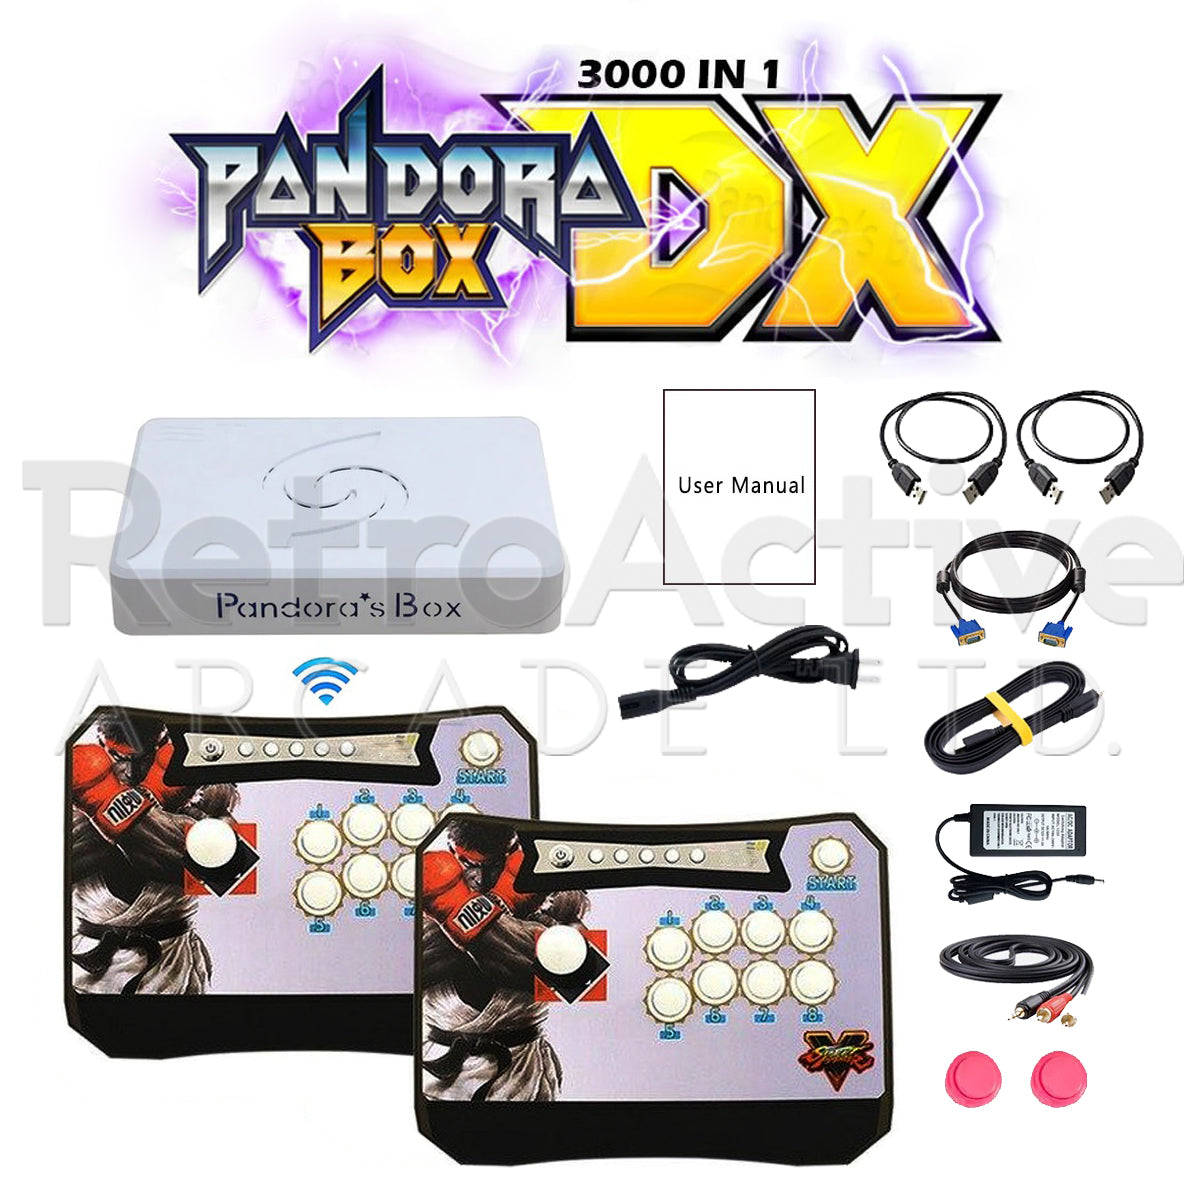 2 Player Pandora Box DX Wireless Game Station (OEM)